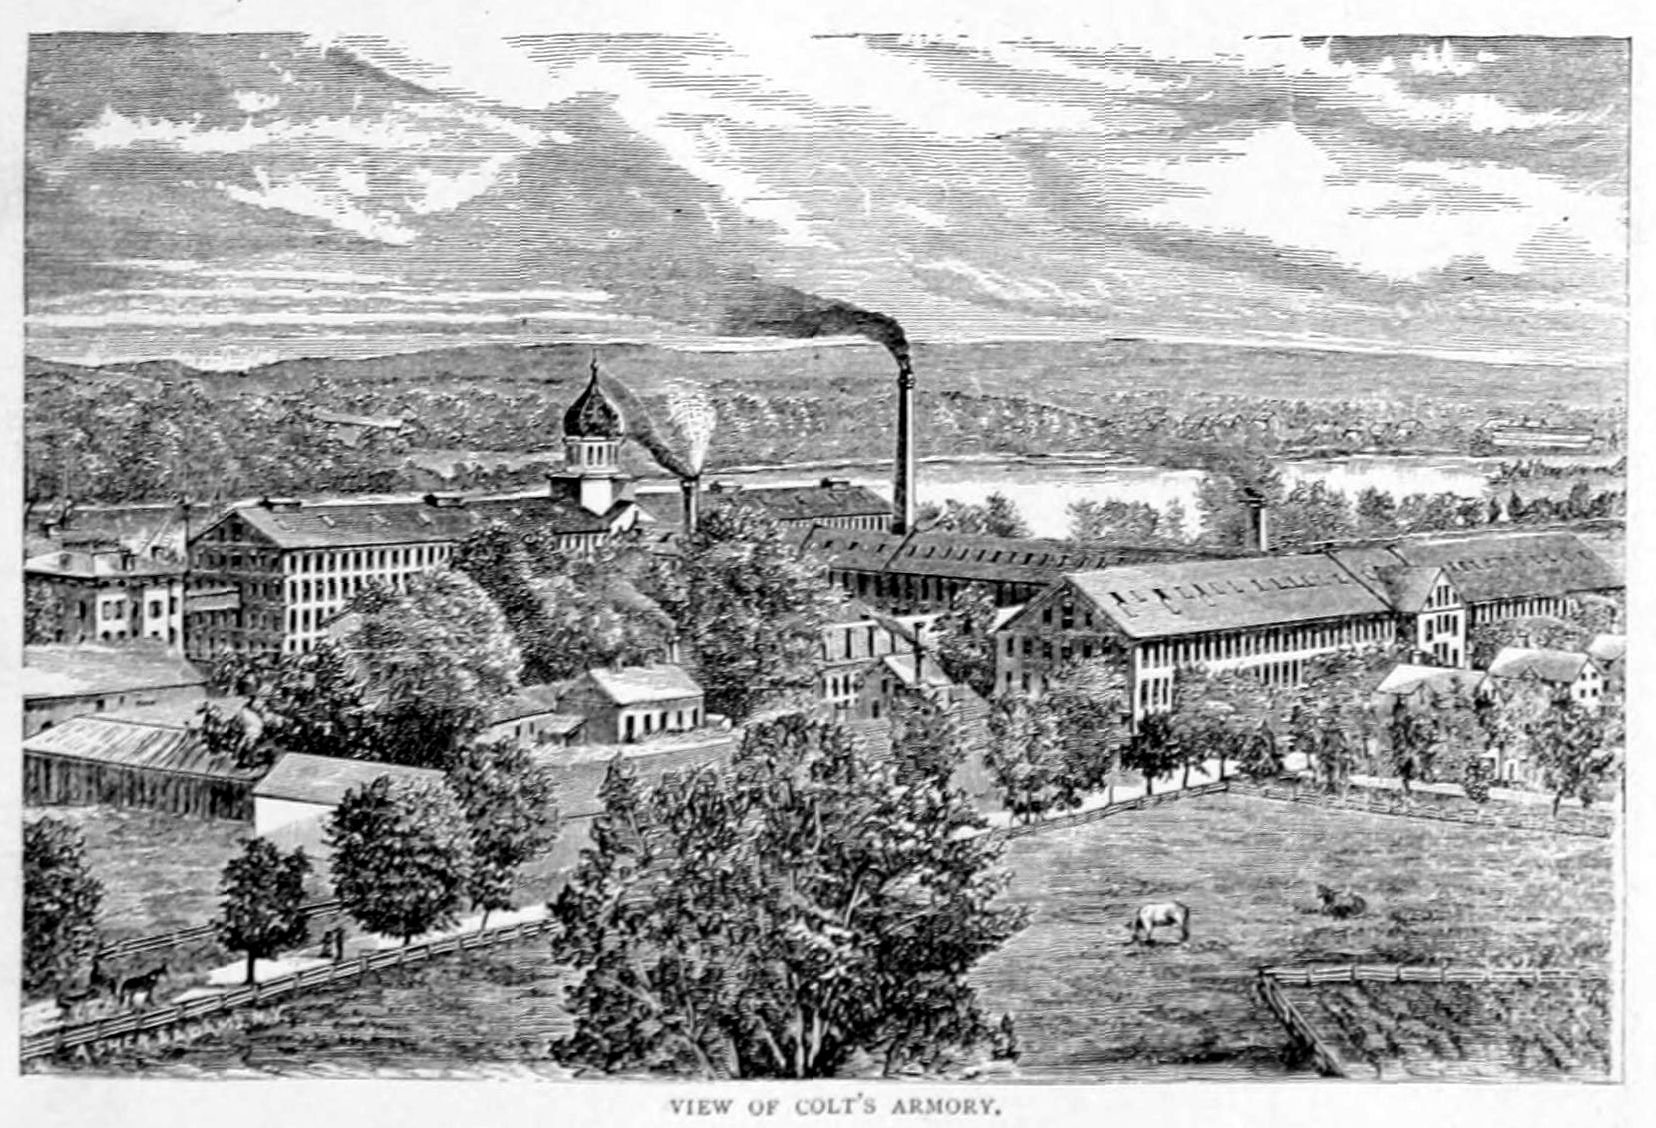 An 1896 engraving of the Colt Armory.